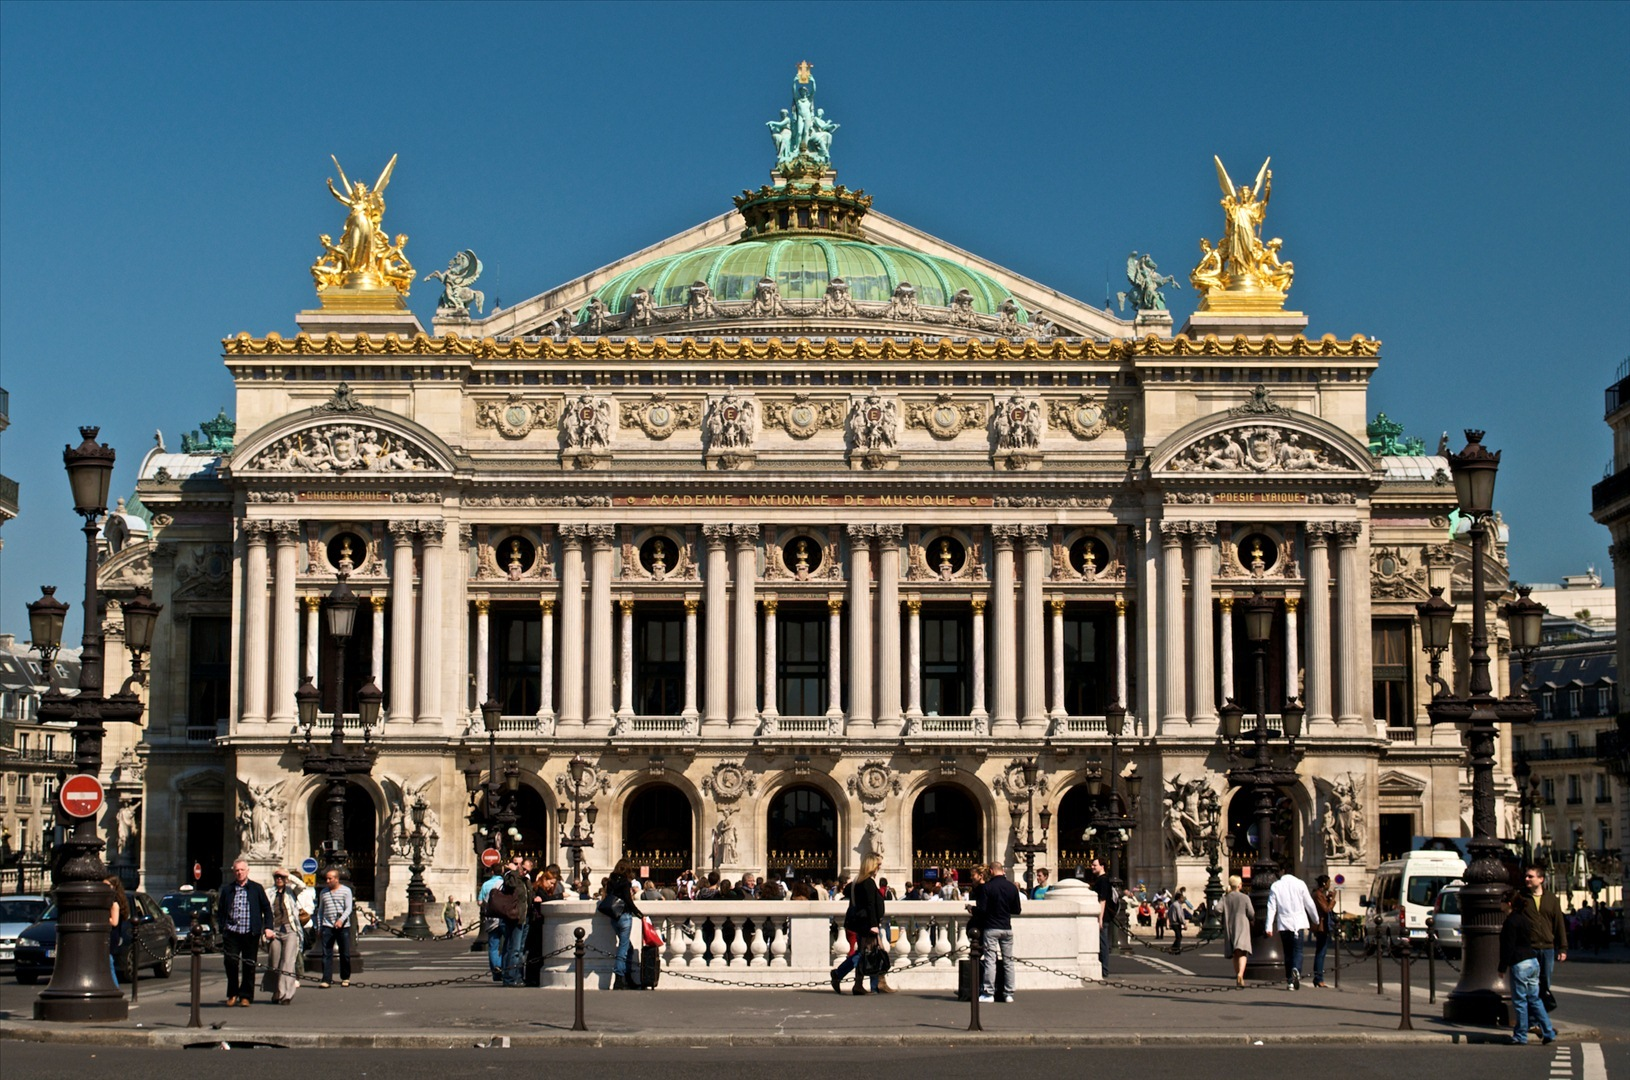 paris_opera_full_frontal_architecture_may_2009